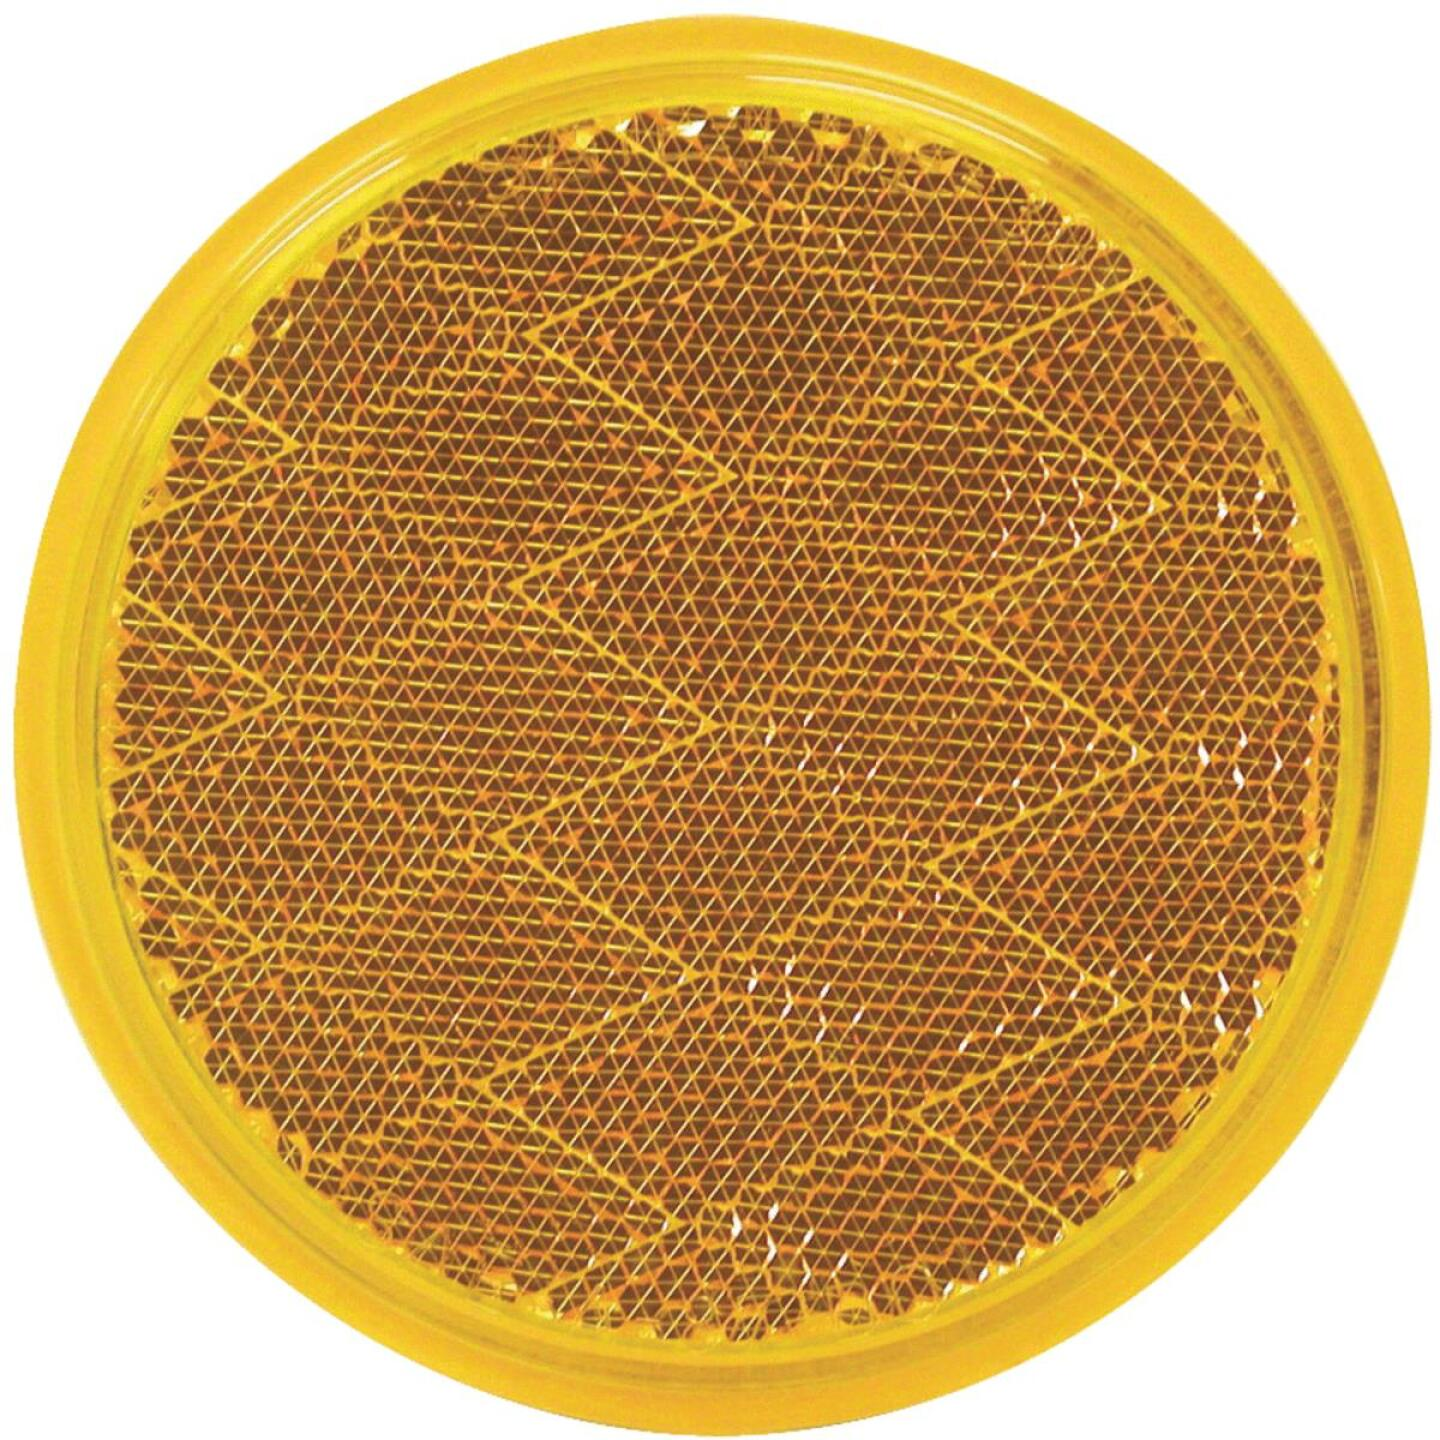 Peterson 3 In. Dia. Round Amber Quick-Mount Reflector Image 1